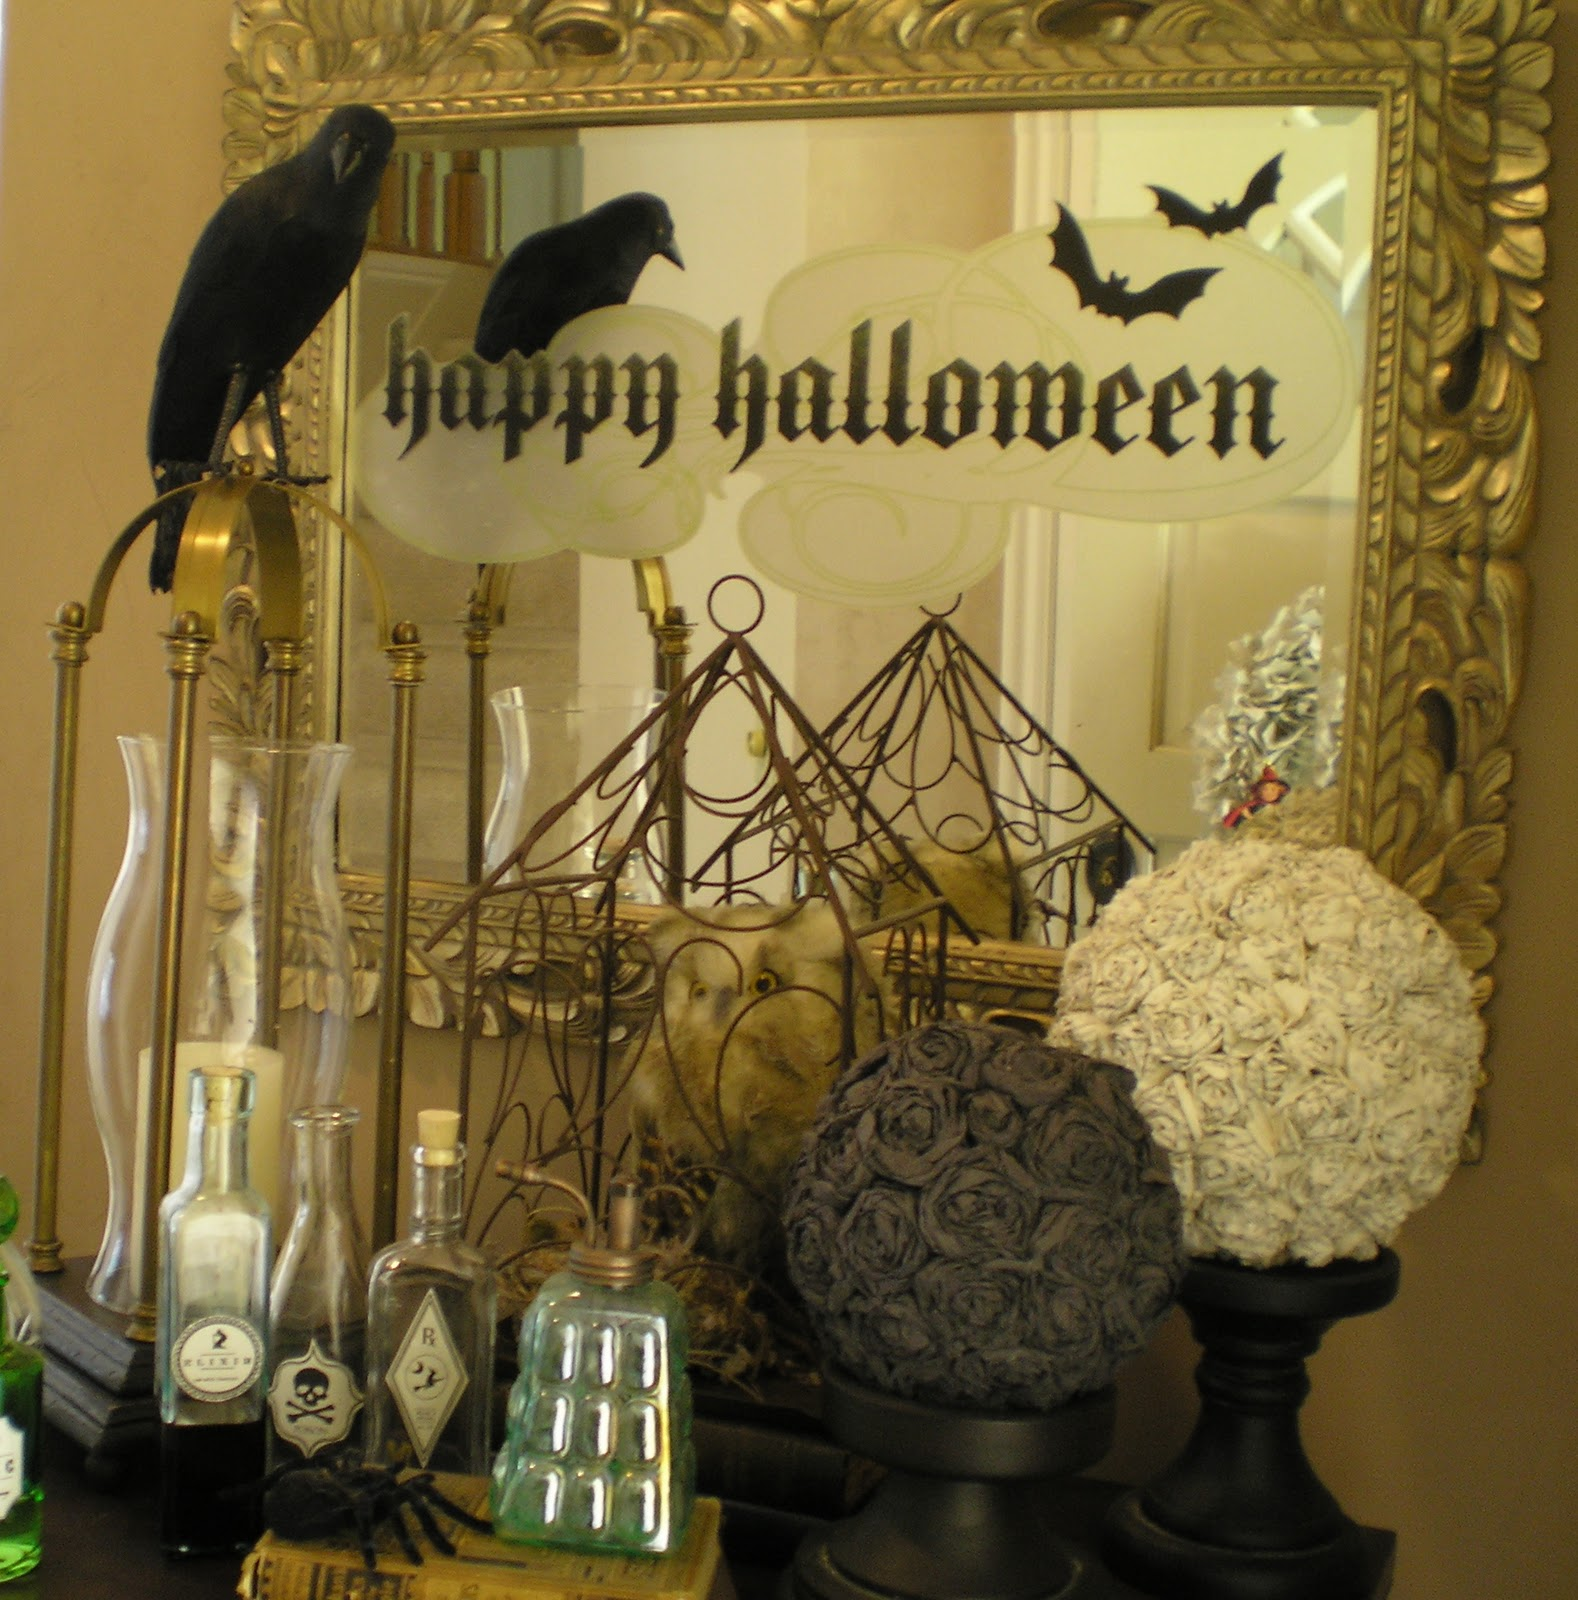 Creative Halloween Decorations Indoor.24 Spooktacular Halloween Mantels And Vignettes Dwelling